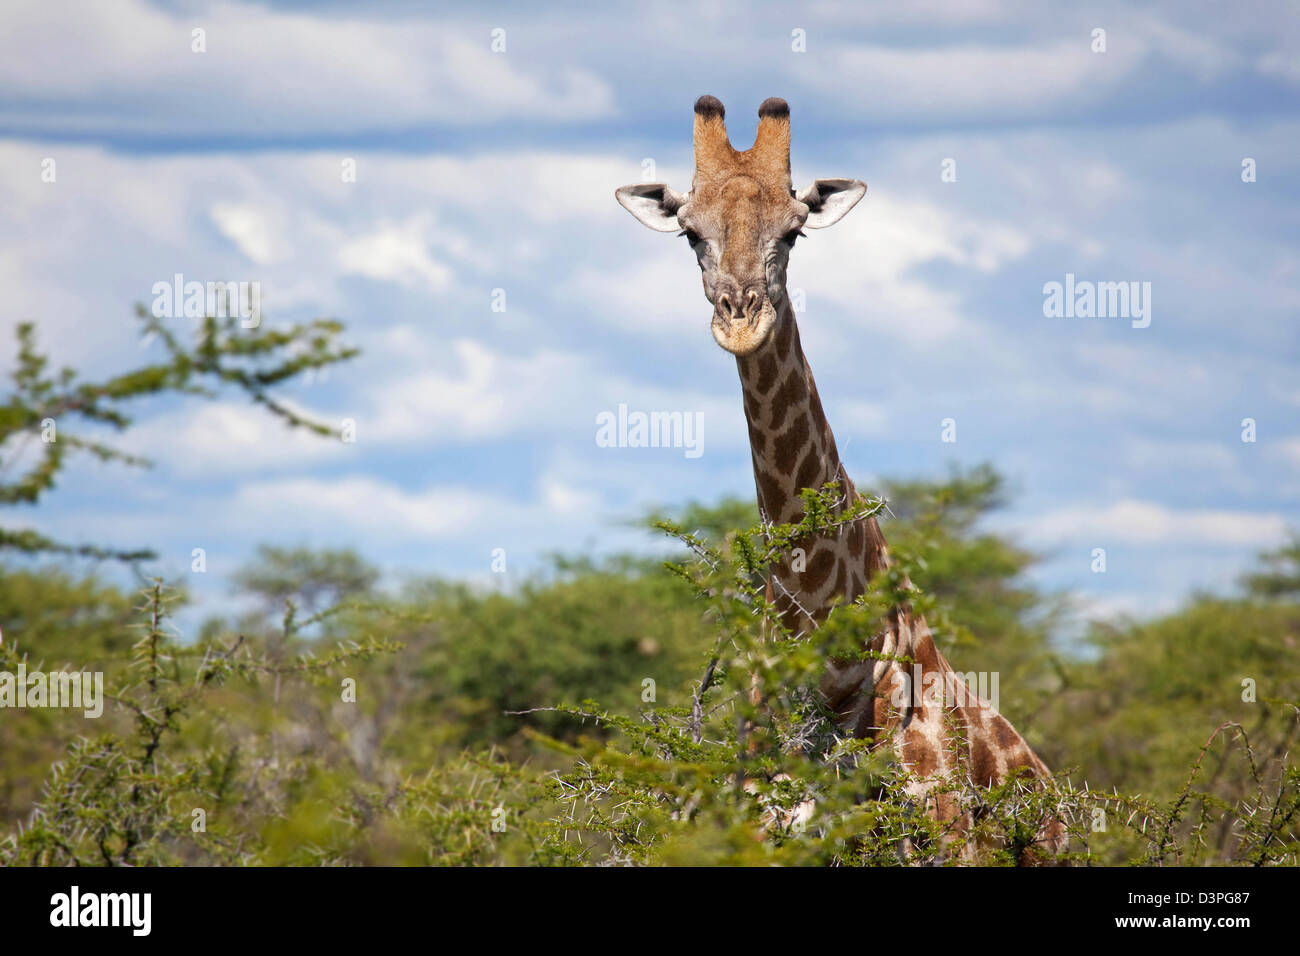 Close-up of curious Giraffe (Giraffa camelopardalis) looking over thornbush in the Etosha National Park, Namibia, - Stock Image